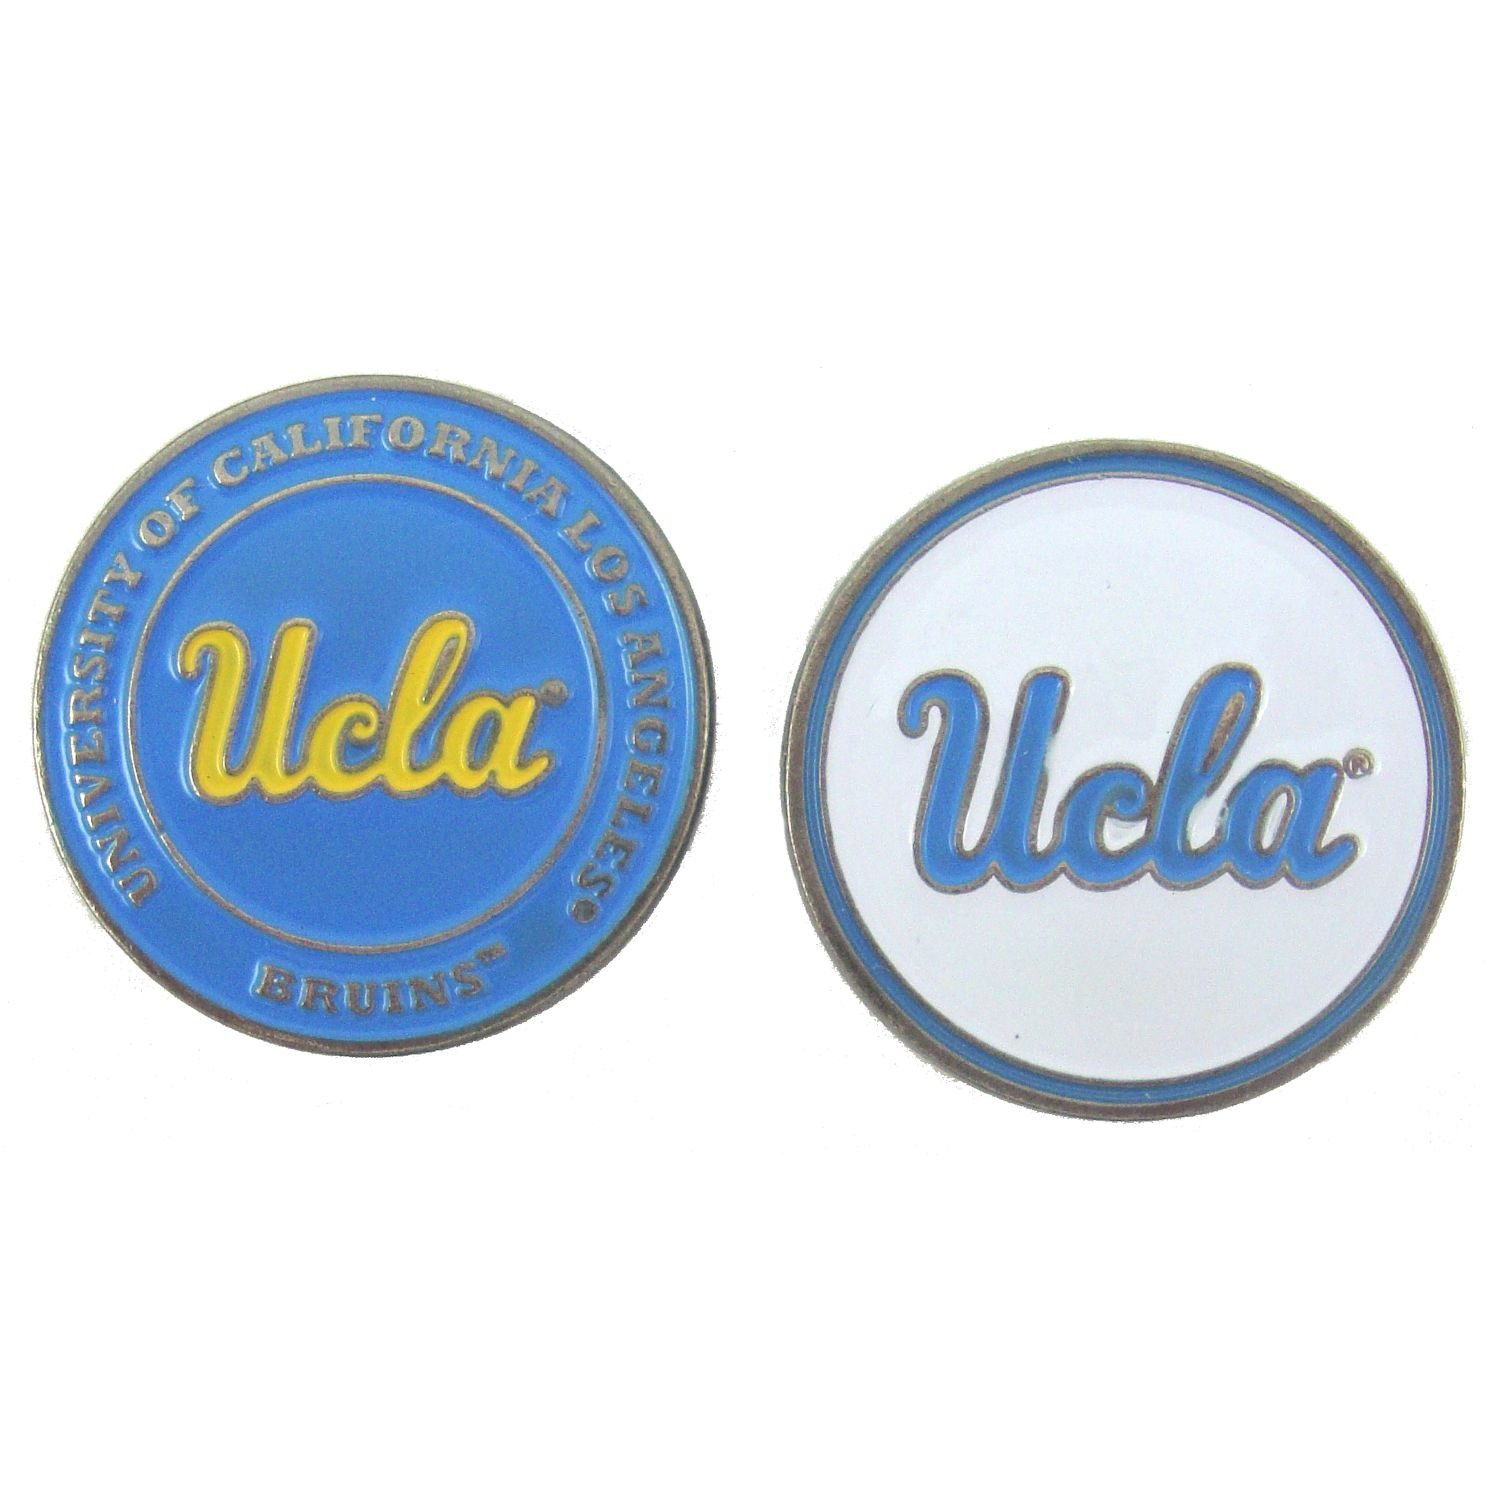 UCLA Bruins Double Sided Golf Ball Marker, UCLA Bruins Ball Marker By Waggle Pro Shop,USA